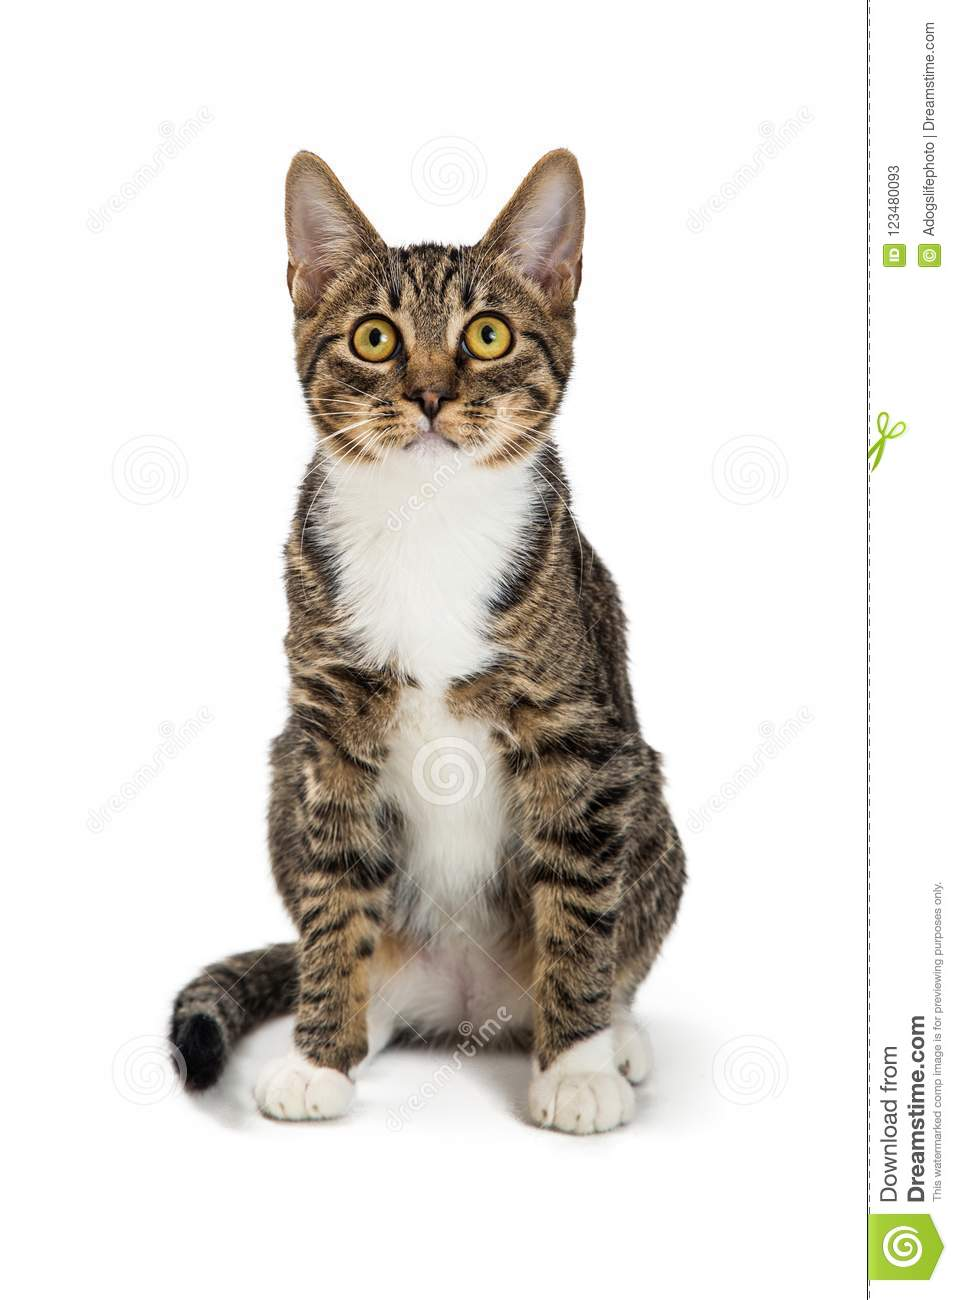 Brown Tabby And White Cat Sitting Facing Forward Stock Image Image Of Forward Animal 123480093